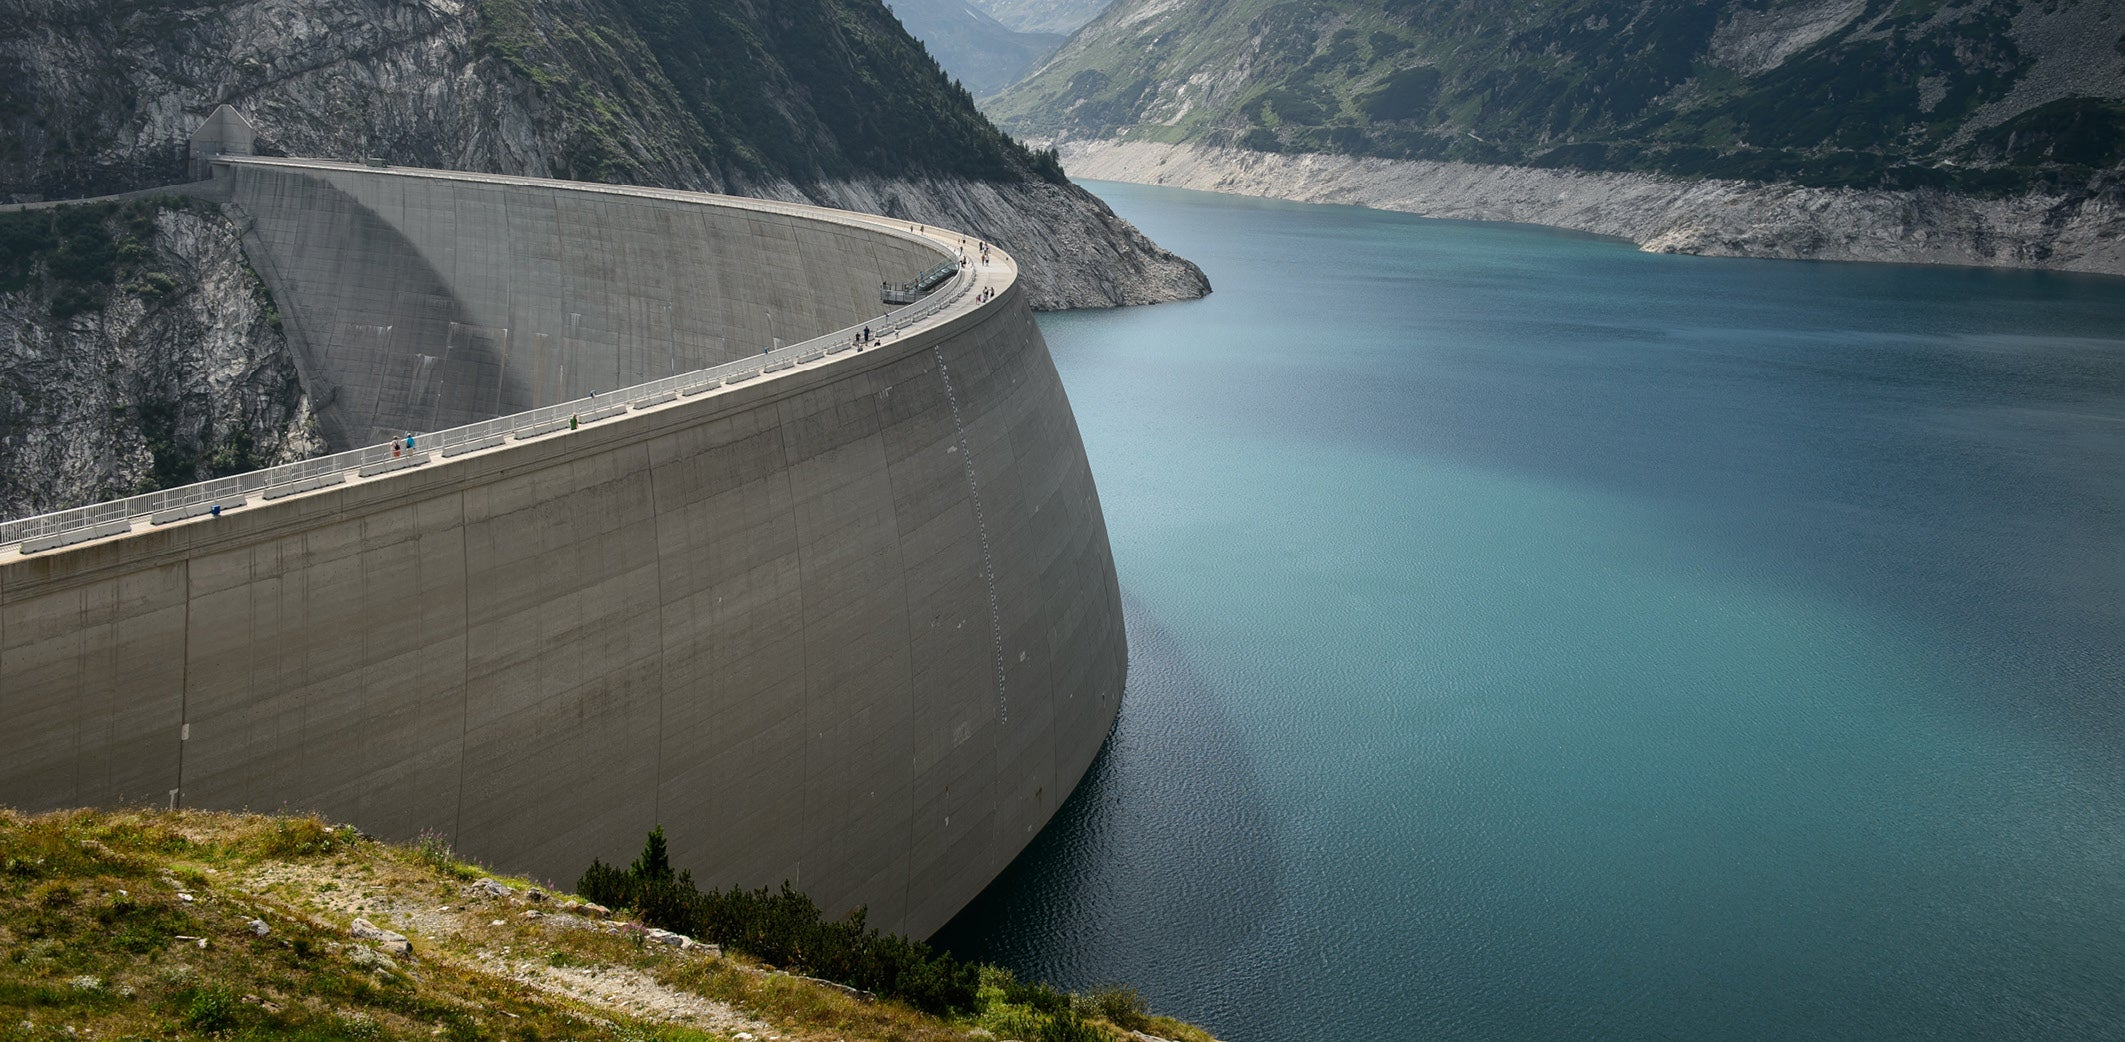 Dams - About - Filtration, transportation, energy use and fresh water source